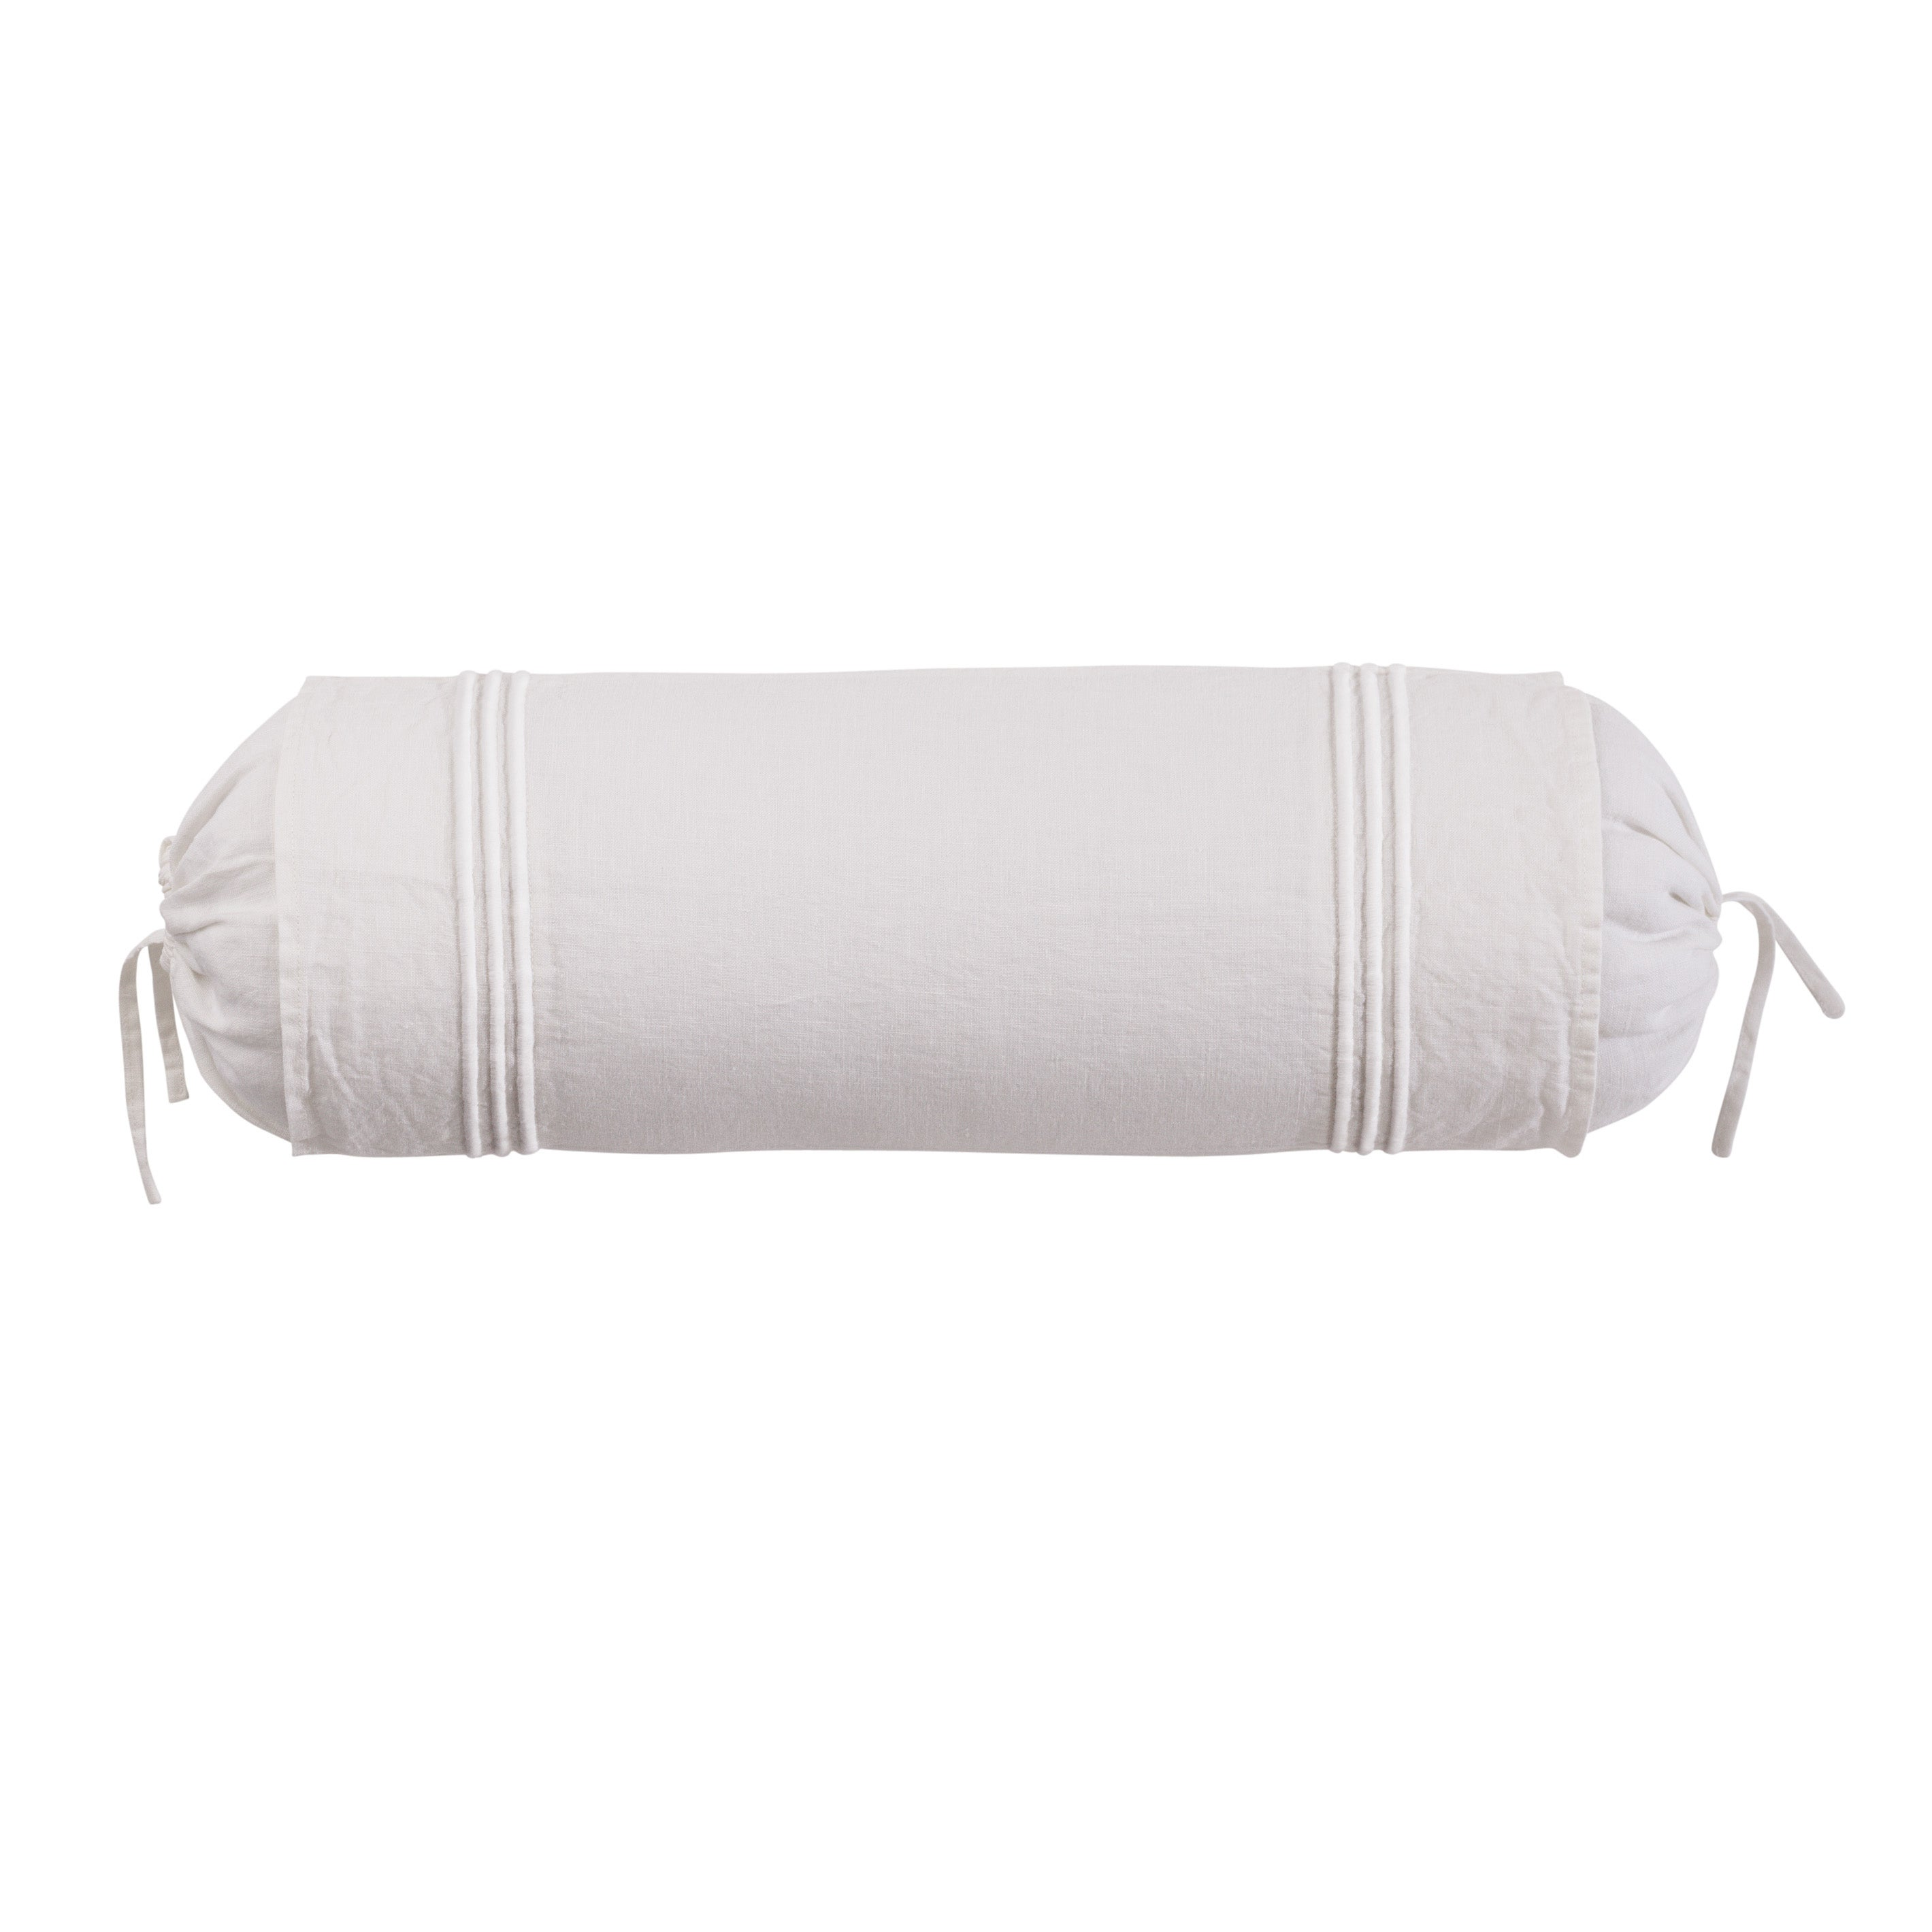 Roxbury Park Baratto Linen Ivory On Ivory Neck Roll Decorative Pillow at Sears.com